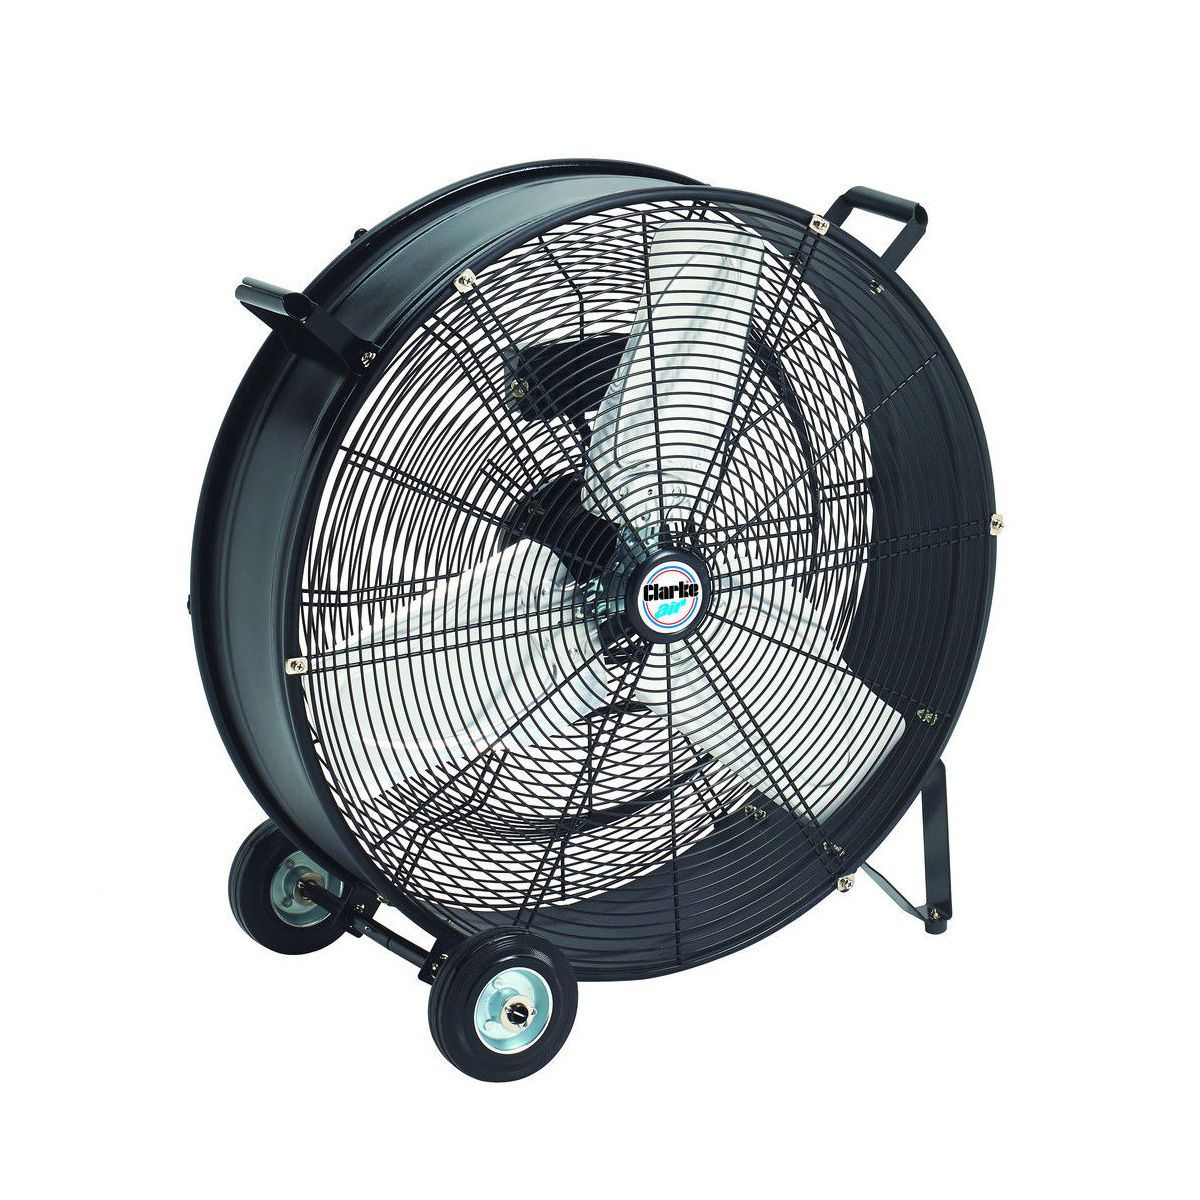 Clarke CAM30 30 Robust Portable Electric Drum Fan 8750cfm 240V~50Hz #567375